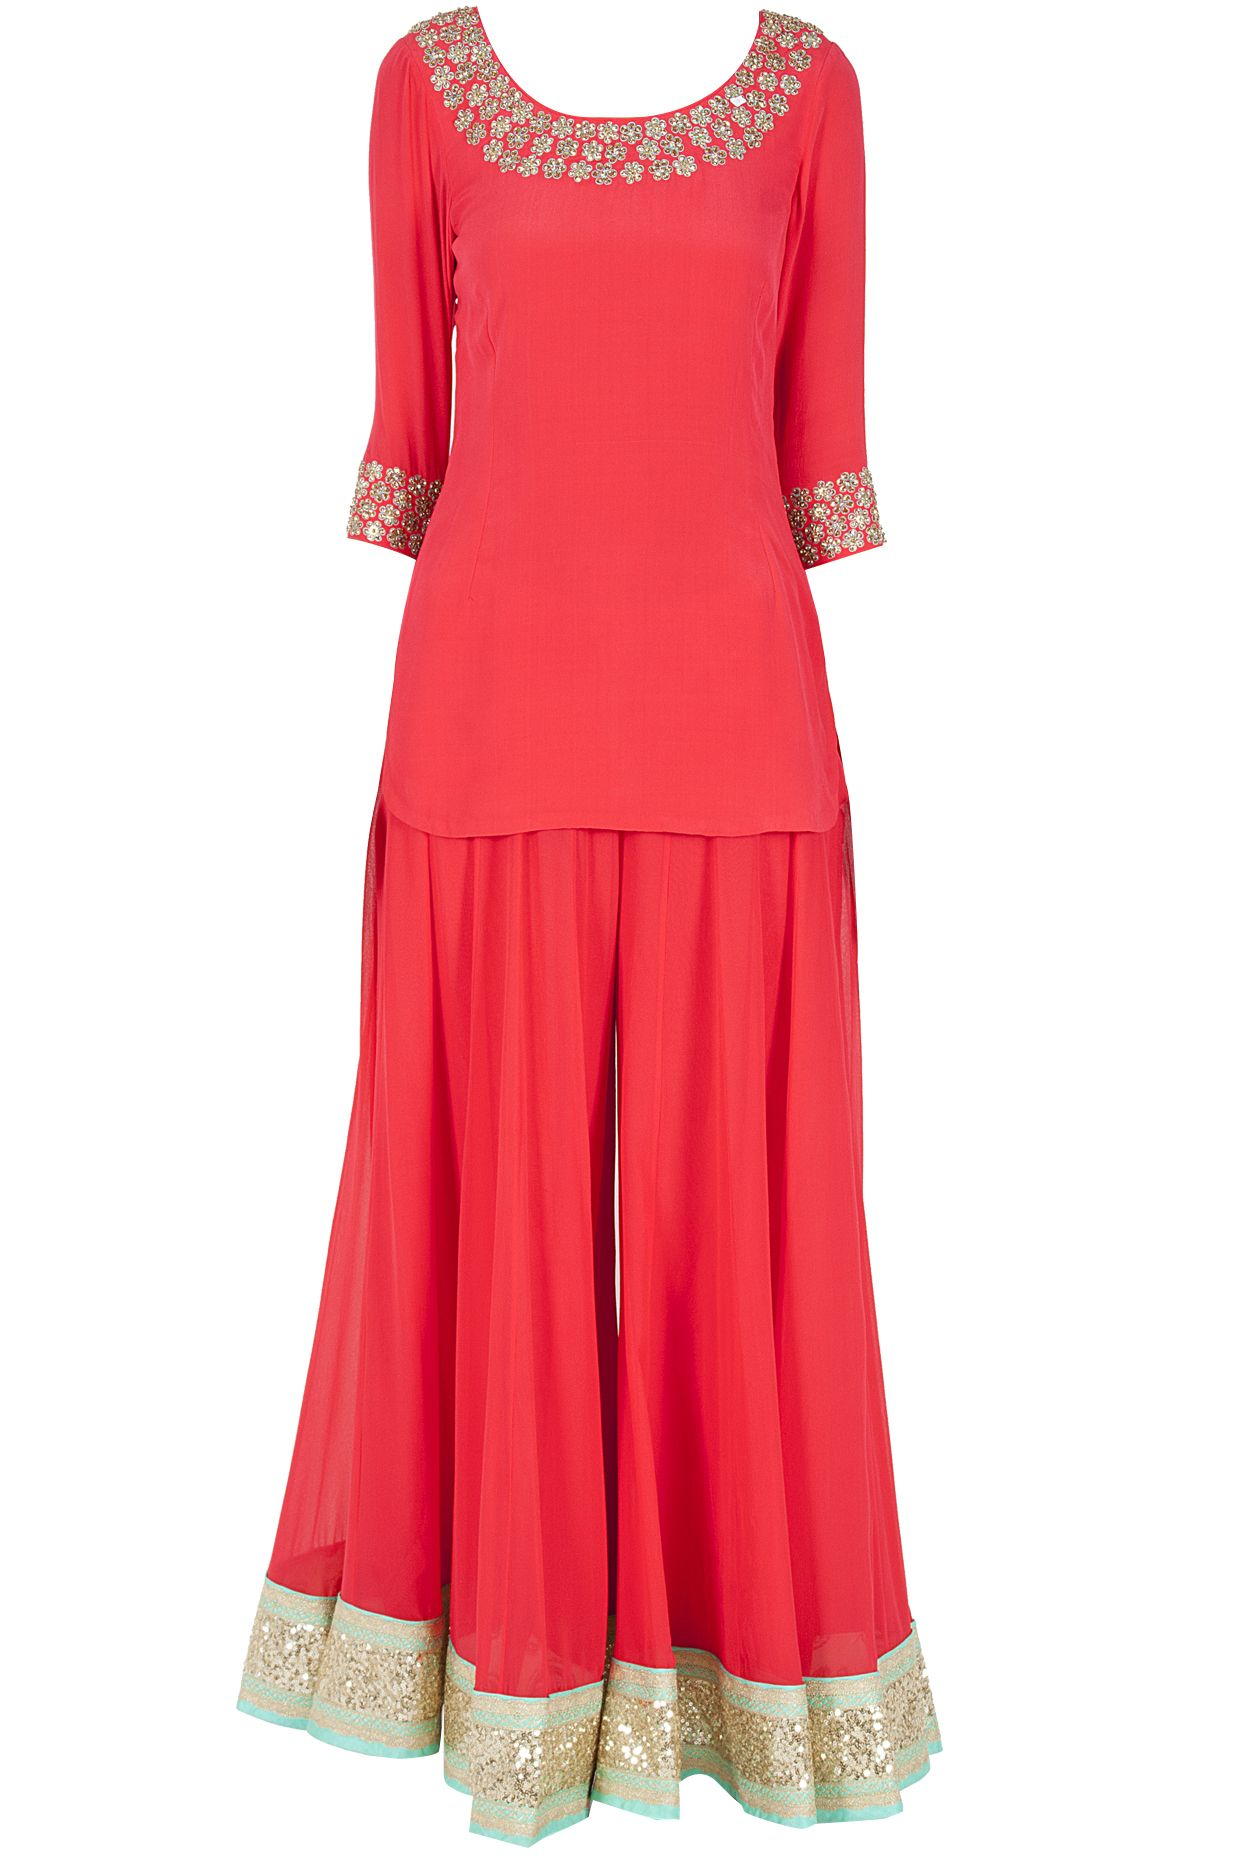 02625cd987 Red embroidered short kurta with sharara available only at Pernia's Pop-Up  Shop.